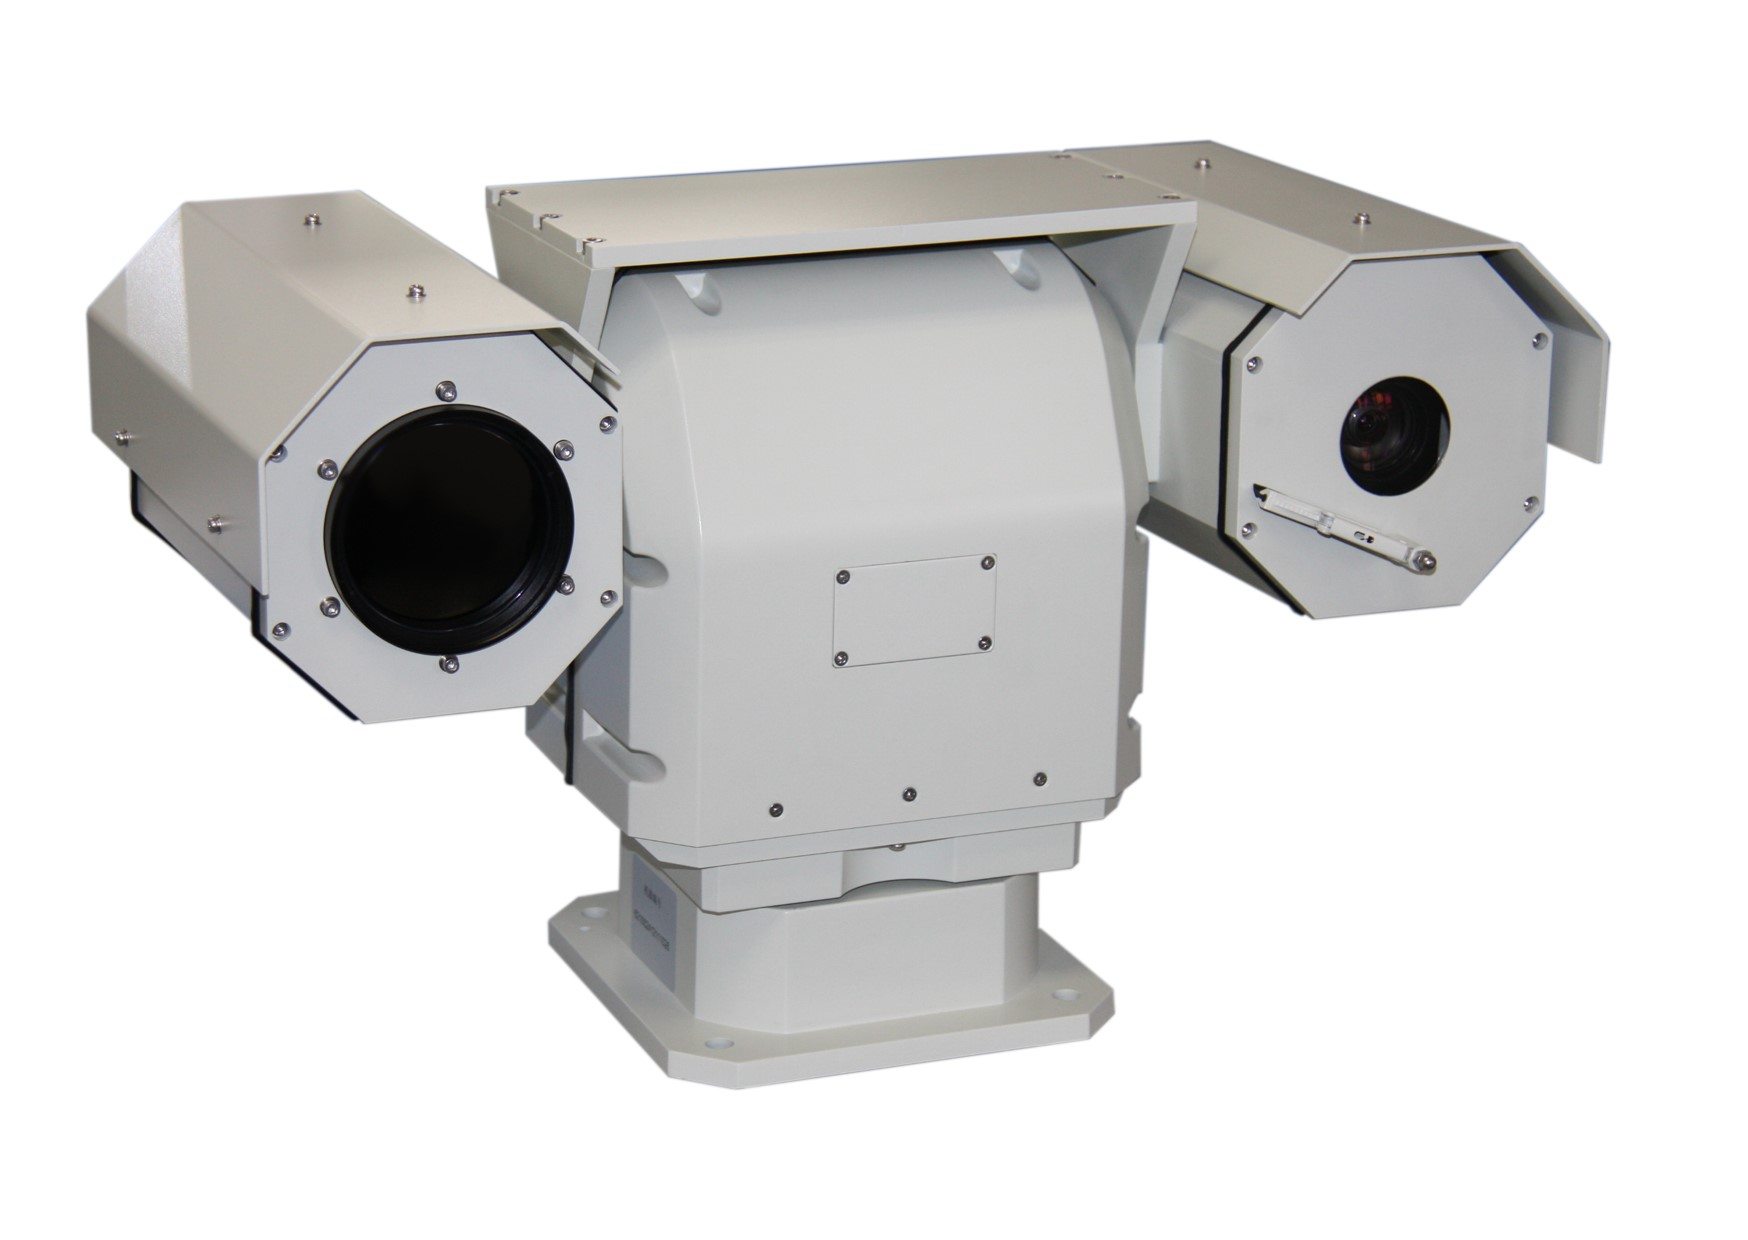 HVLV1000HTIR104R Seaport Surveillance Thermal Camera